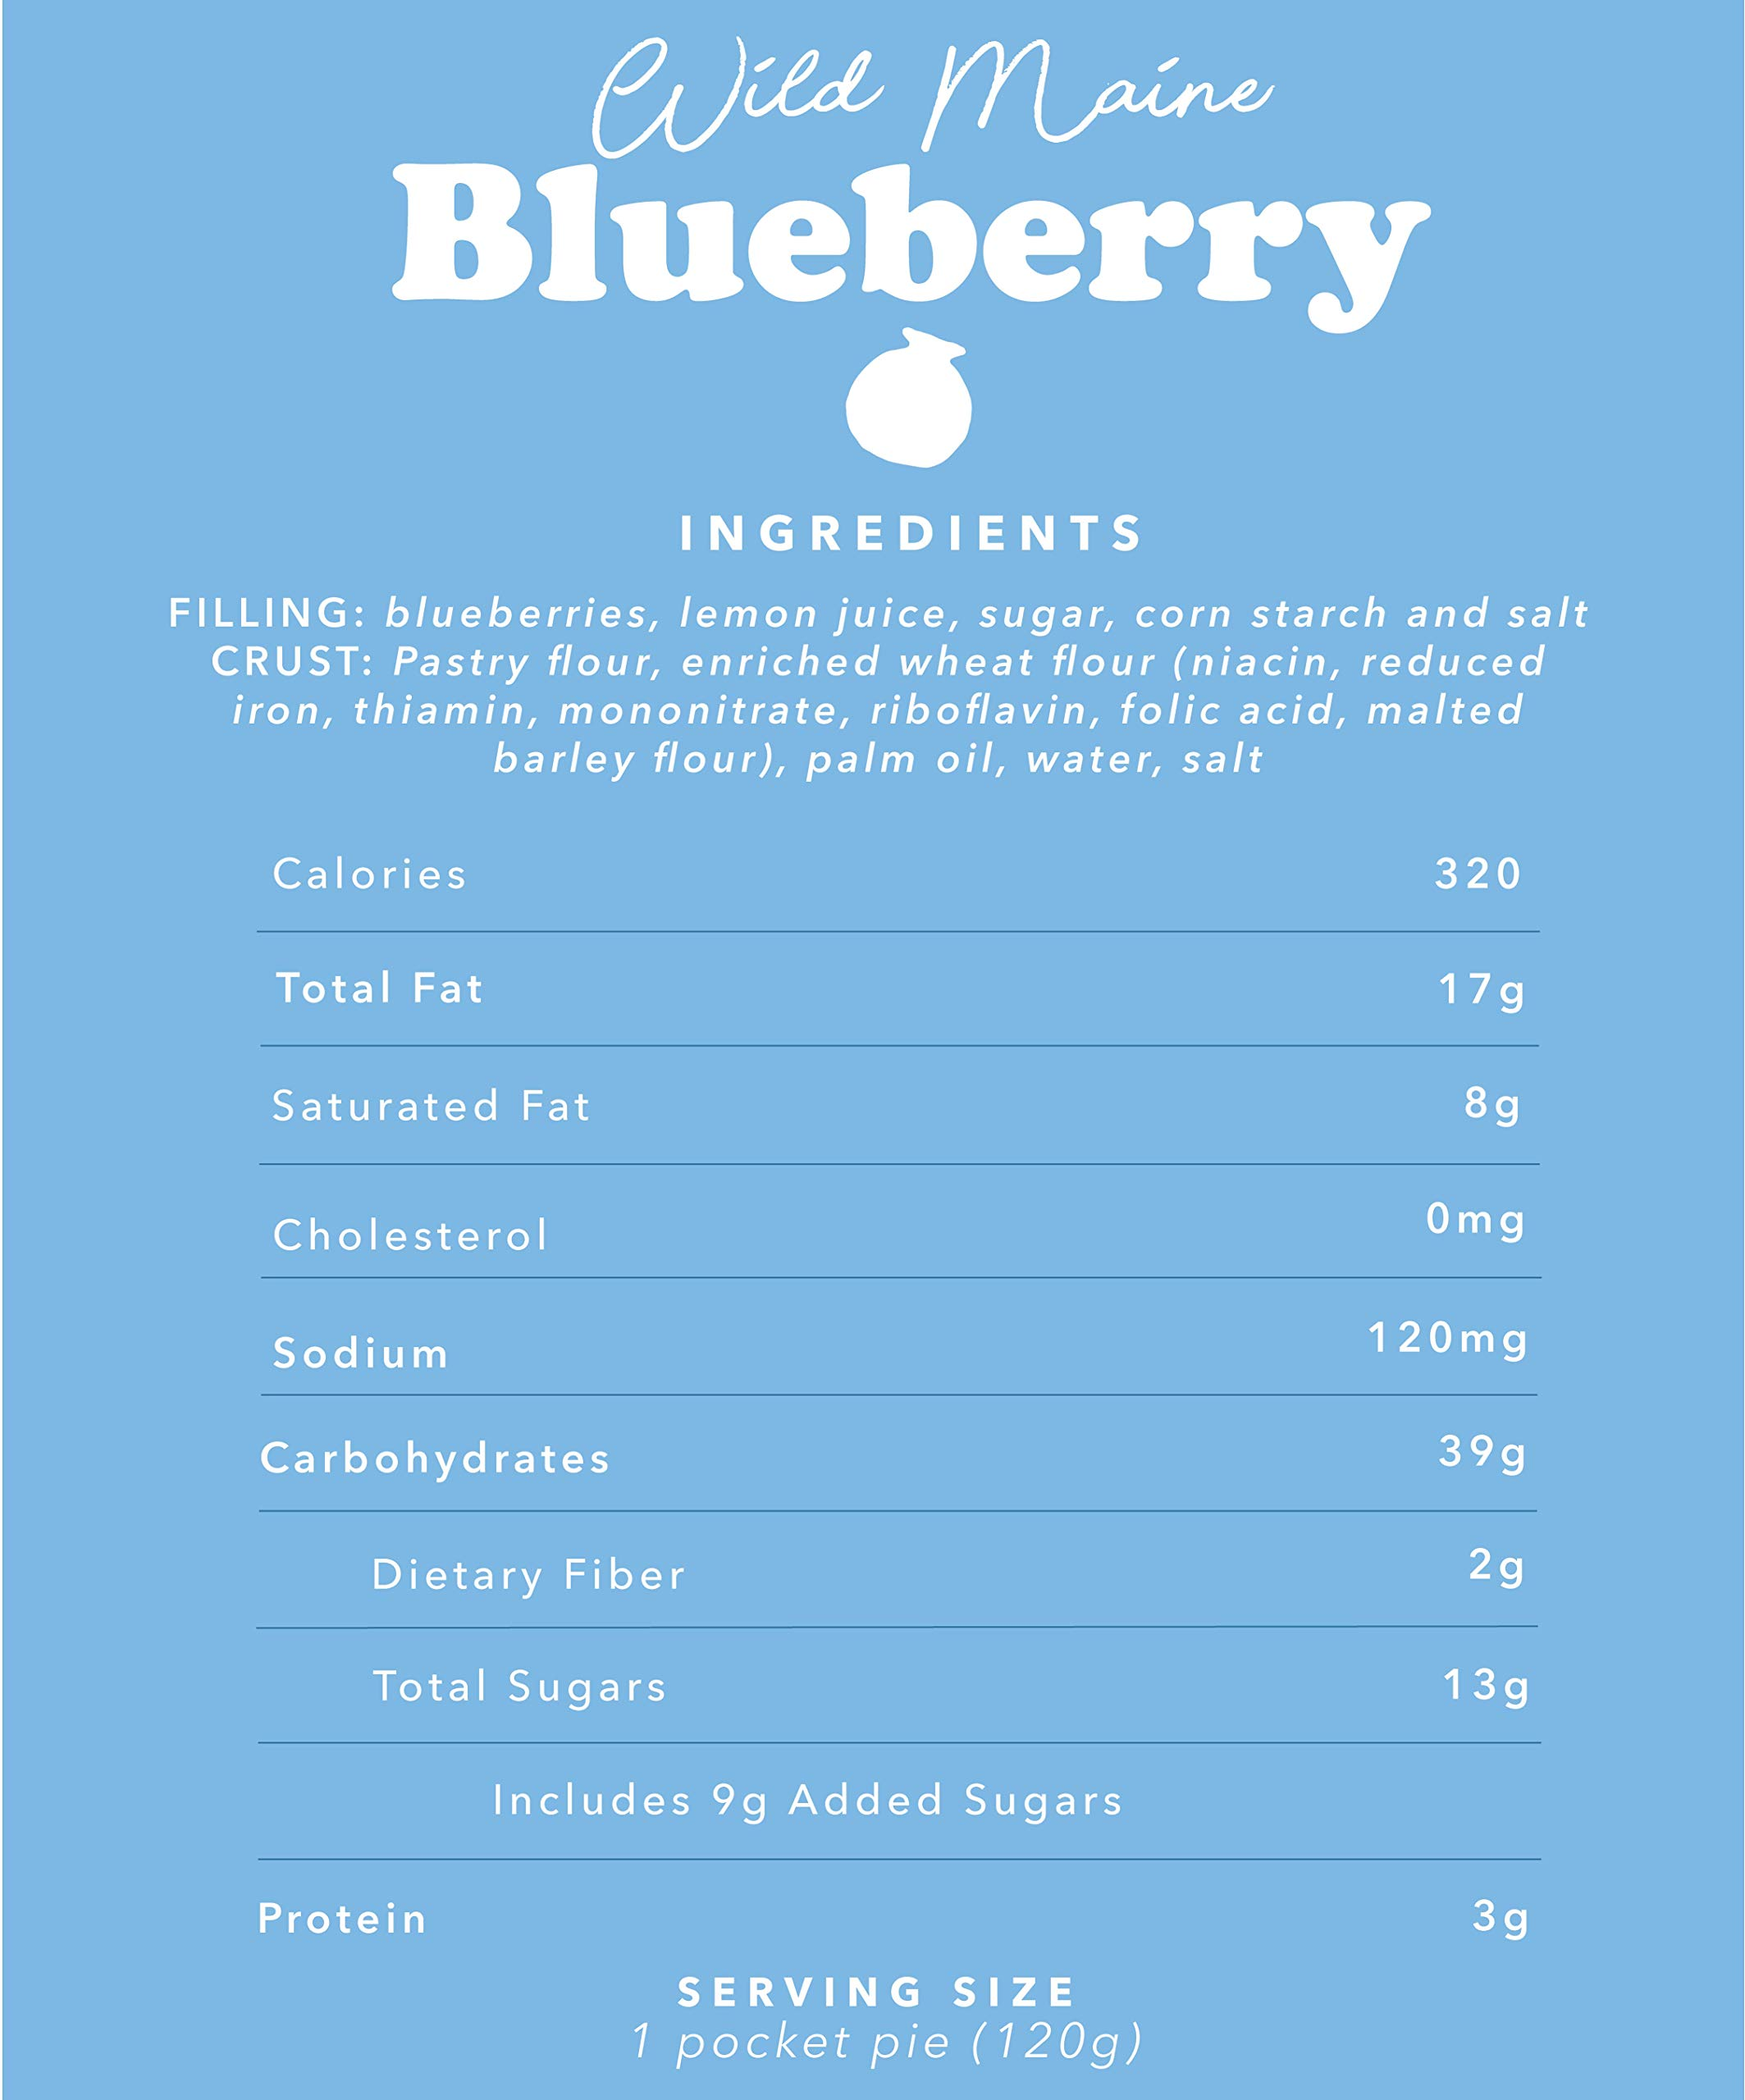 Mamie's 12 Pack Melt-in-Your-Mouth Single Serving Blueberry Pies, Individually Packaged 4.5oz Pocket Pies, Preservative Free, Shipped Frozen and Ready to Bake, Made in USA. by Mamie's Pies (Image #6)